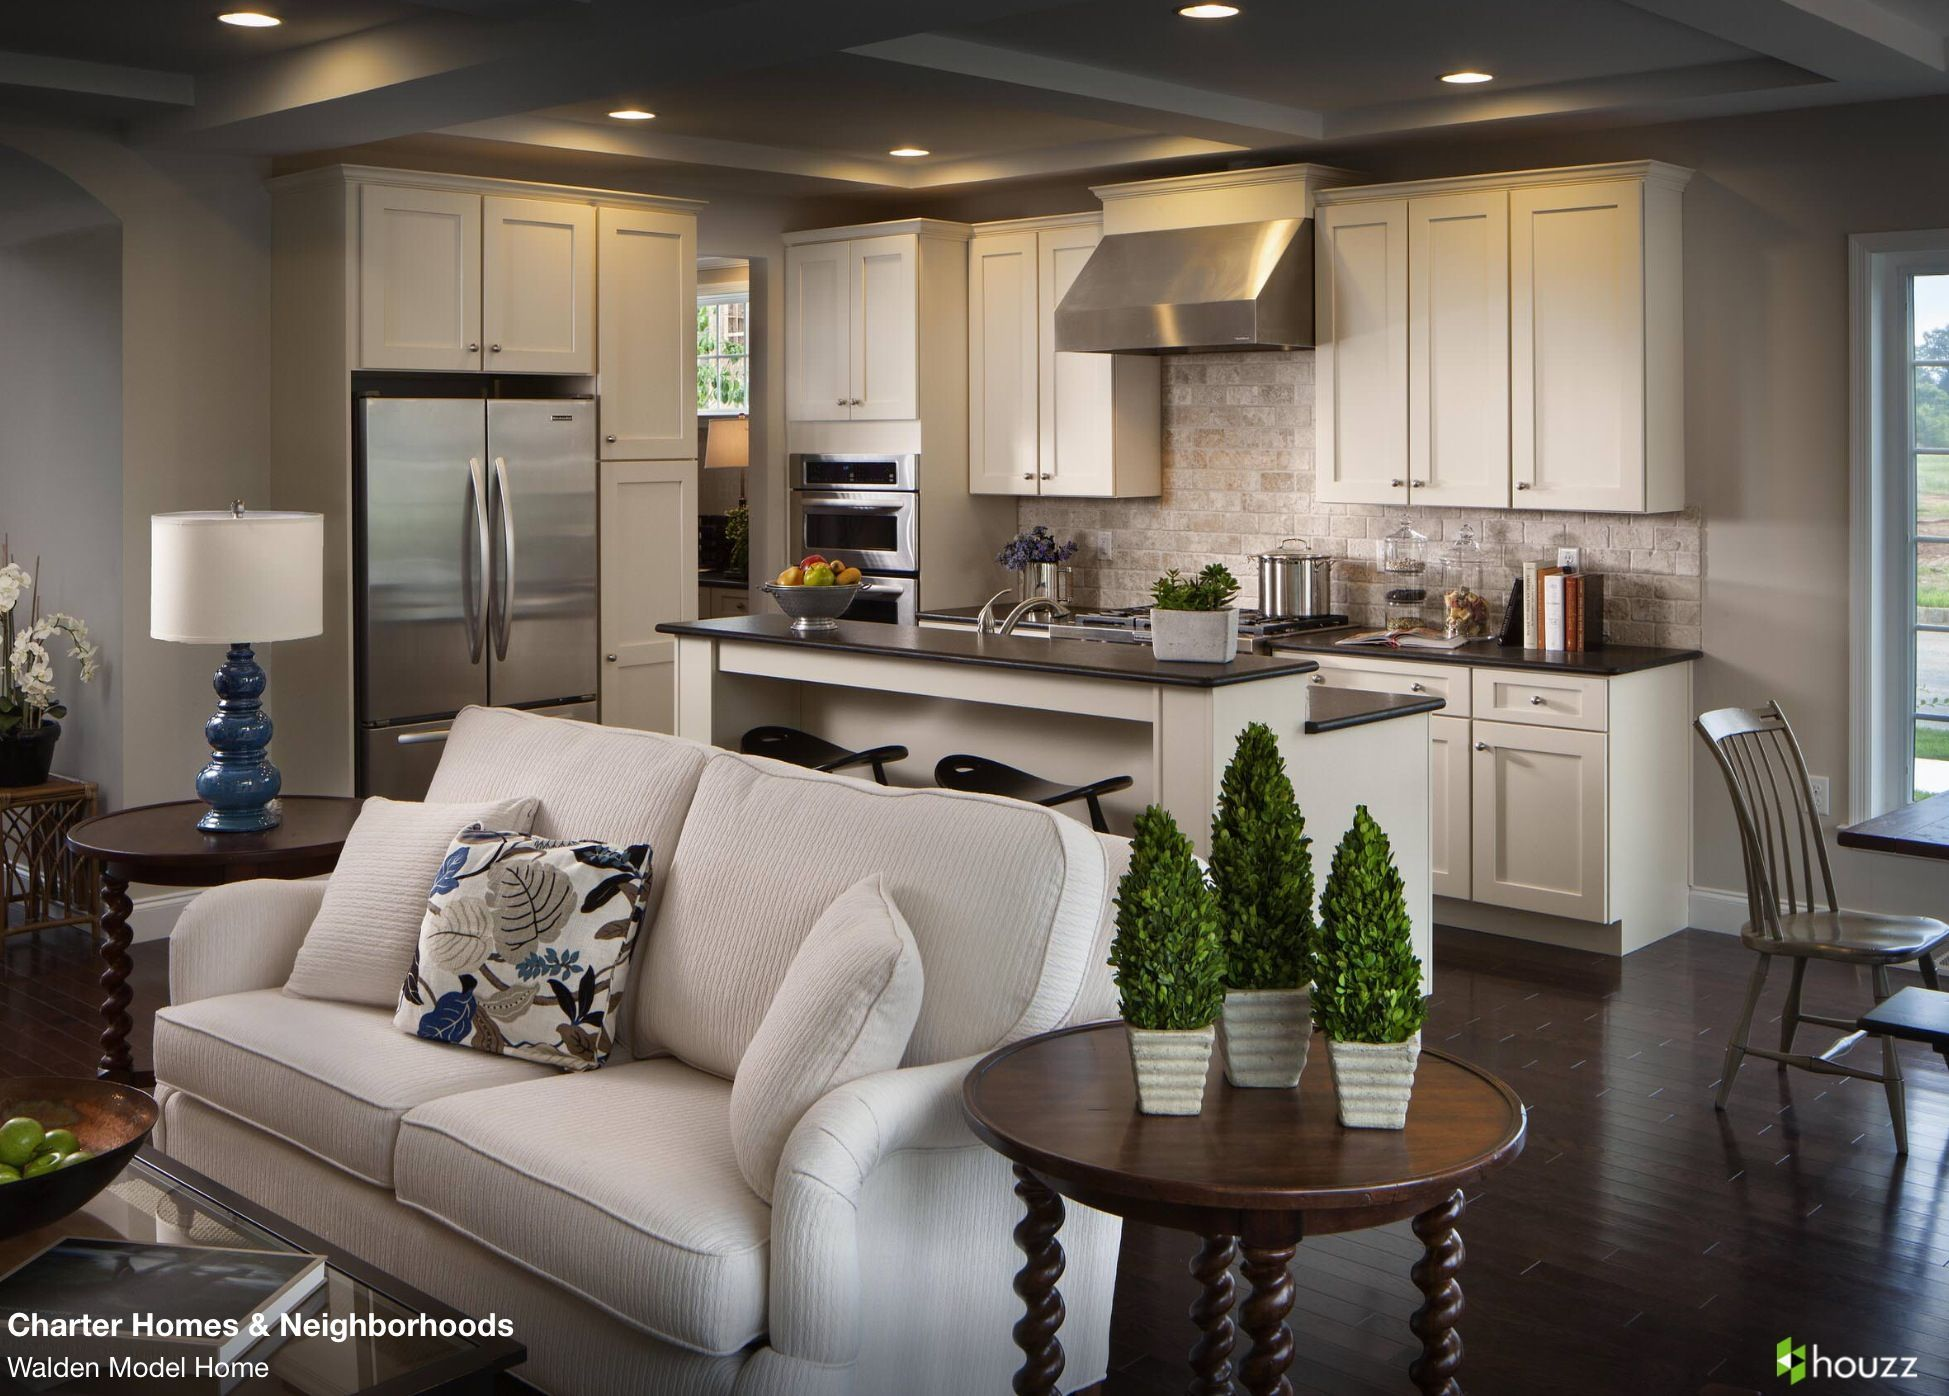 Kitchen Design Trends Open Concept Kitchen Living Room Living Room And Kitchen Design Open Kitchen And Living Room